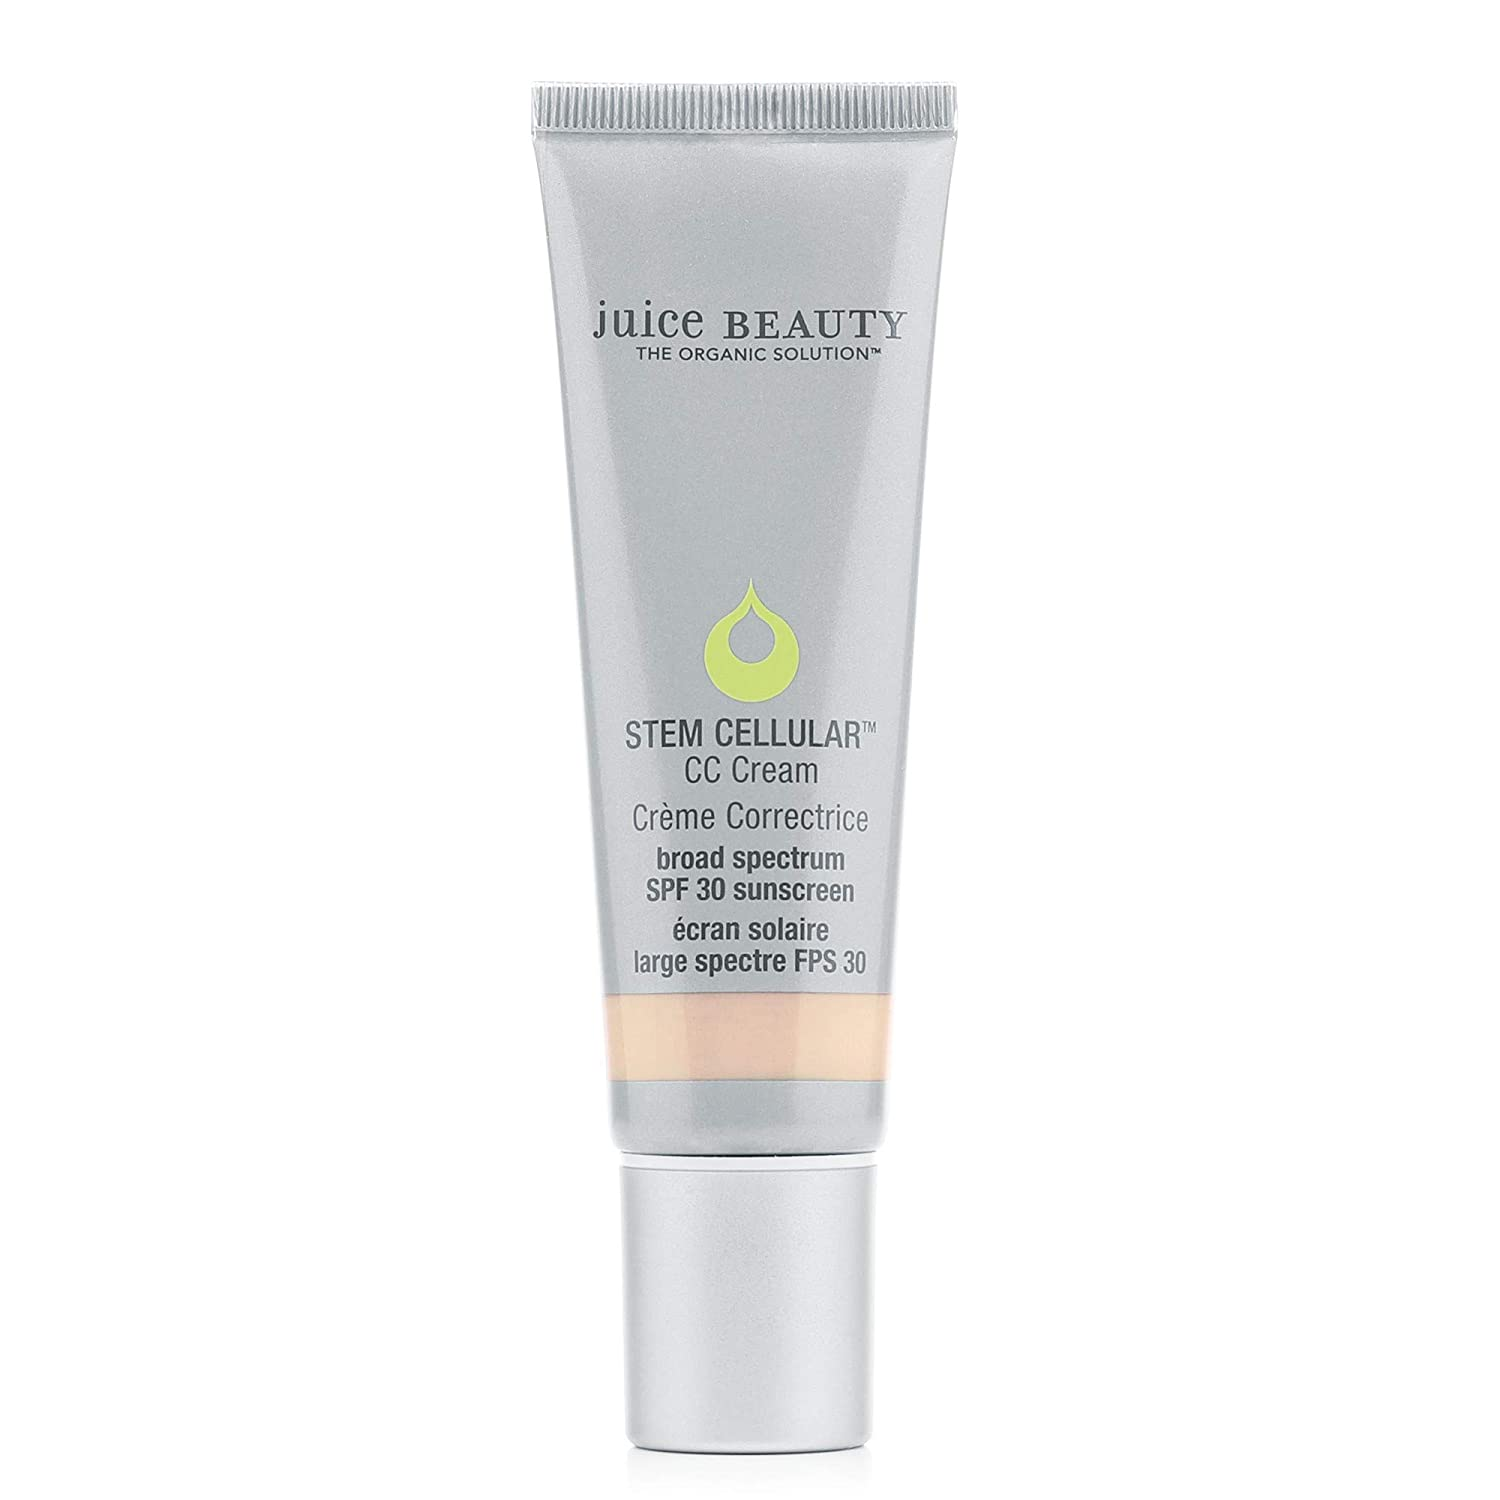 Juice Beauty Stem Cellular Max 76% OFF New color CC Cream Glow Rosy with 30 Zinc SPF